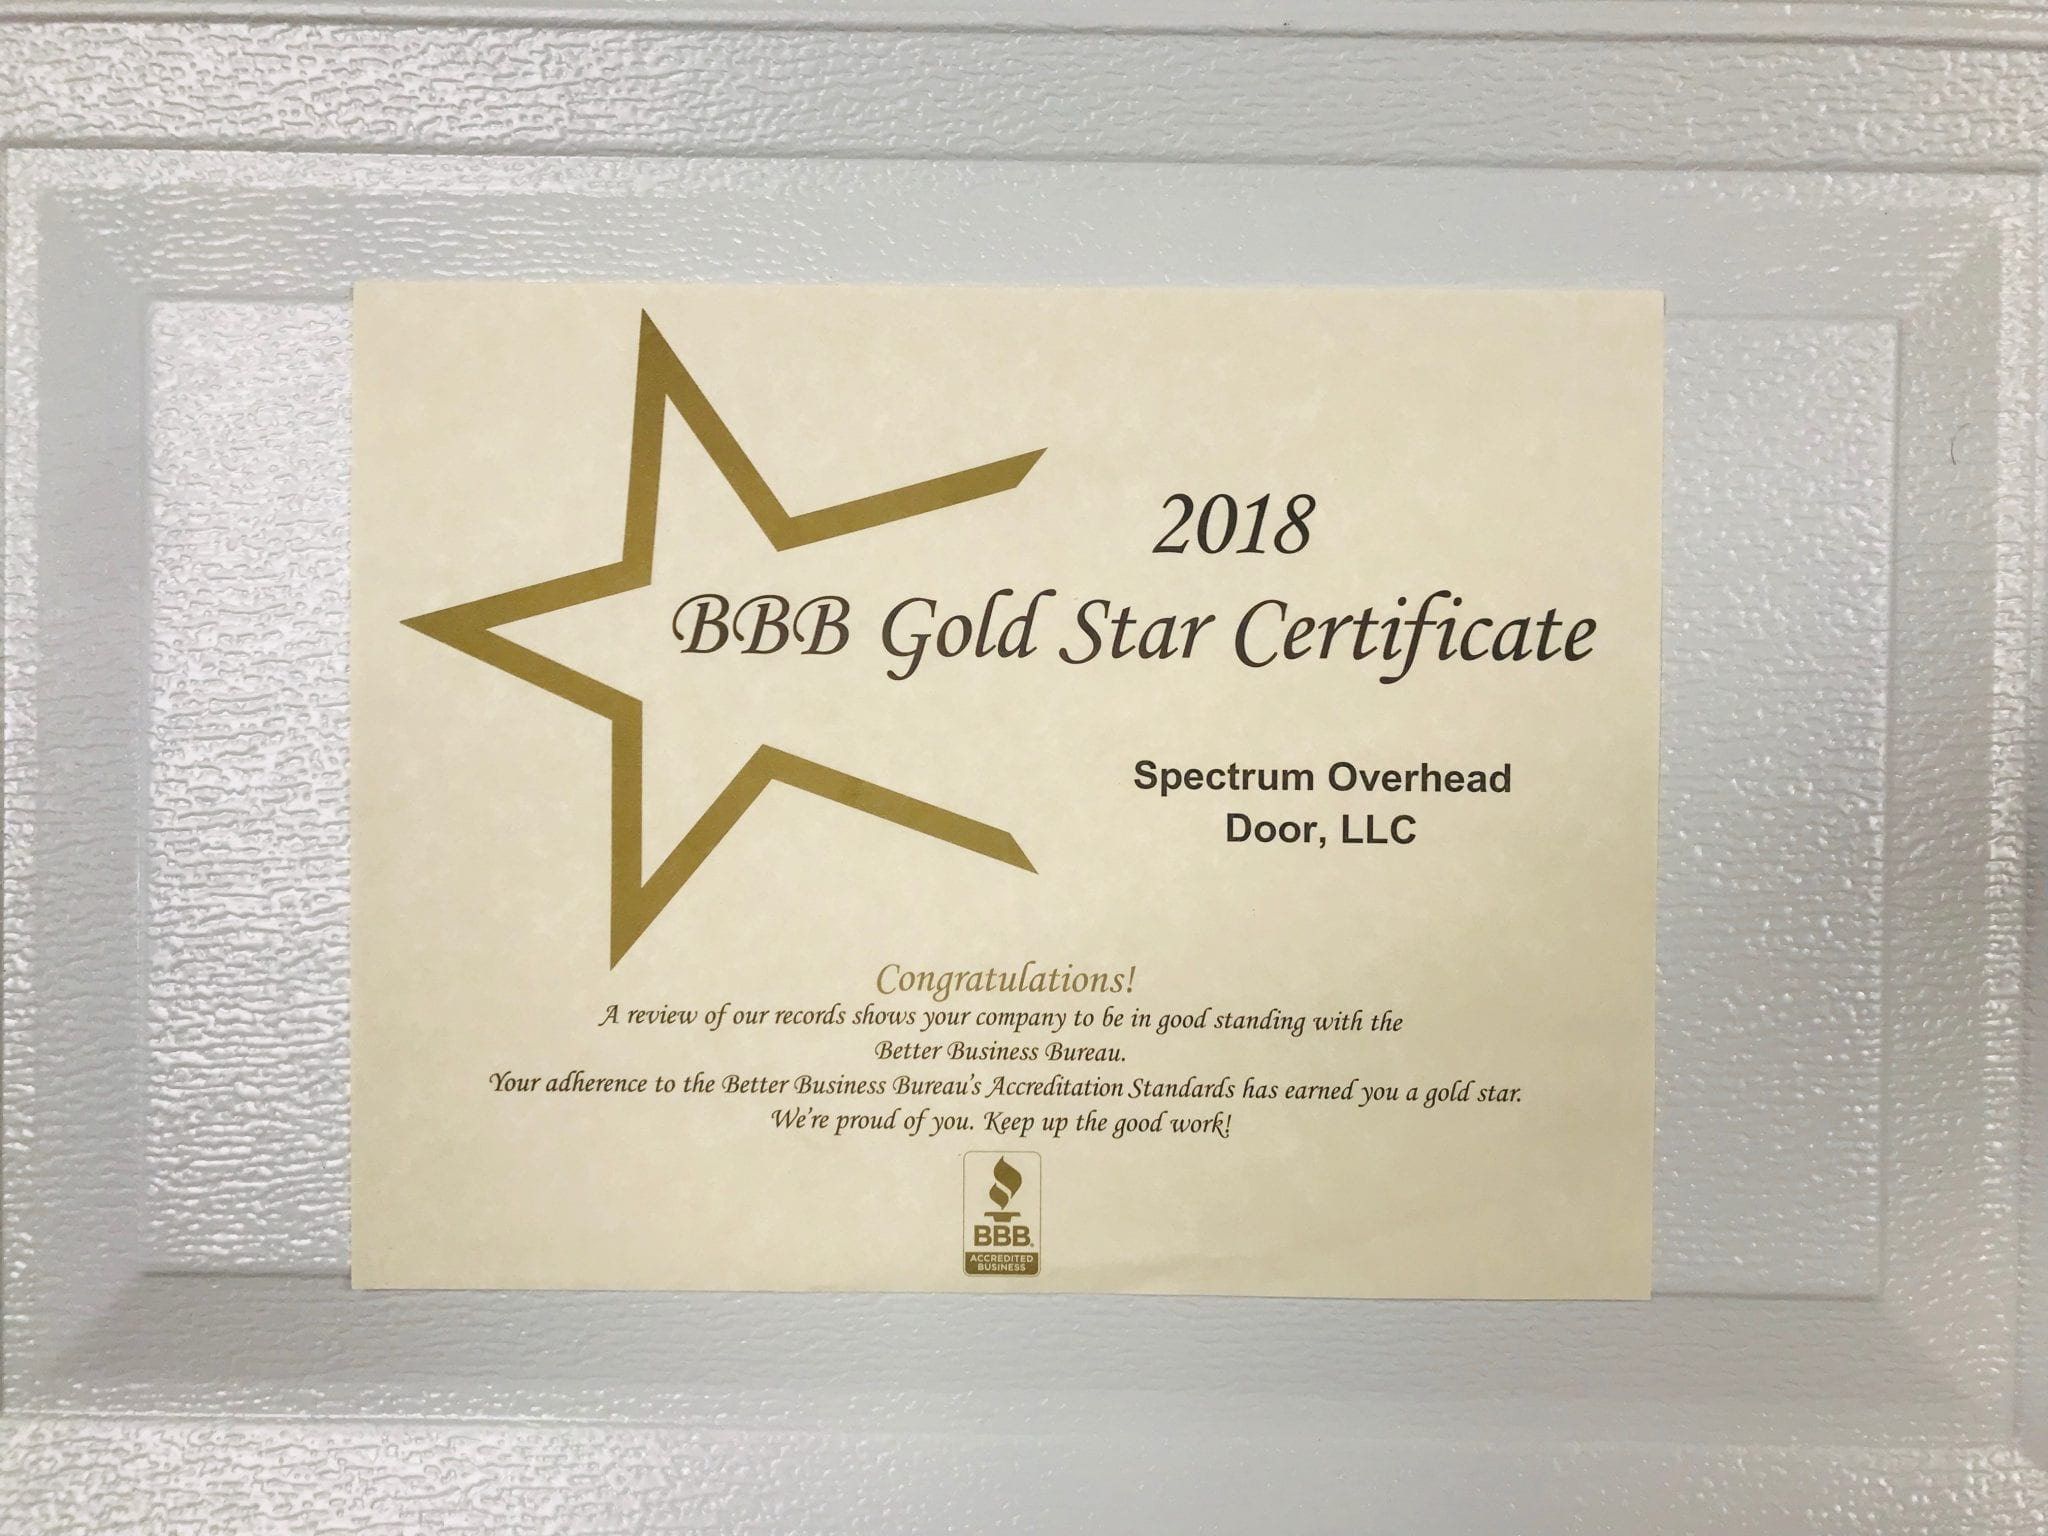 BBB of Houston's Gold Star Certificate